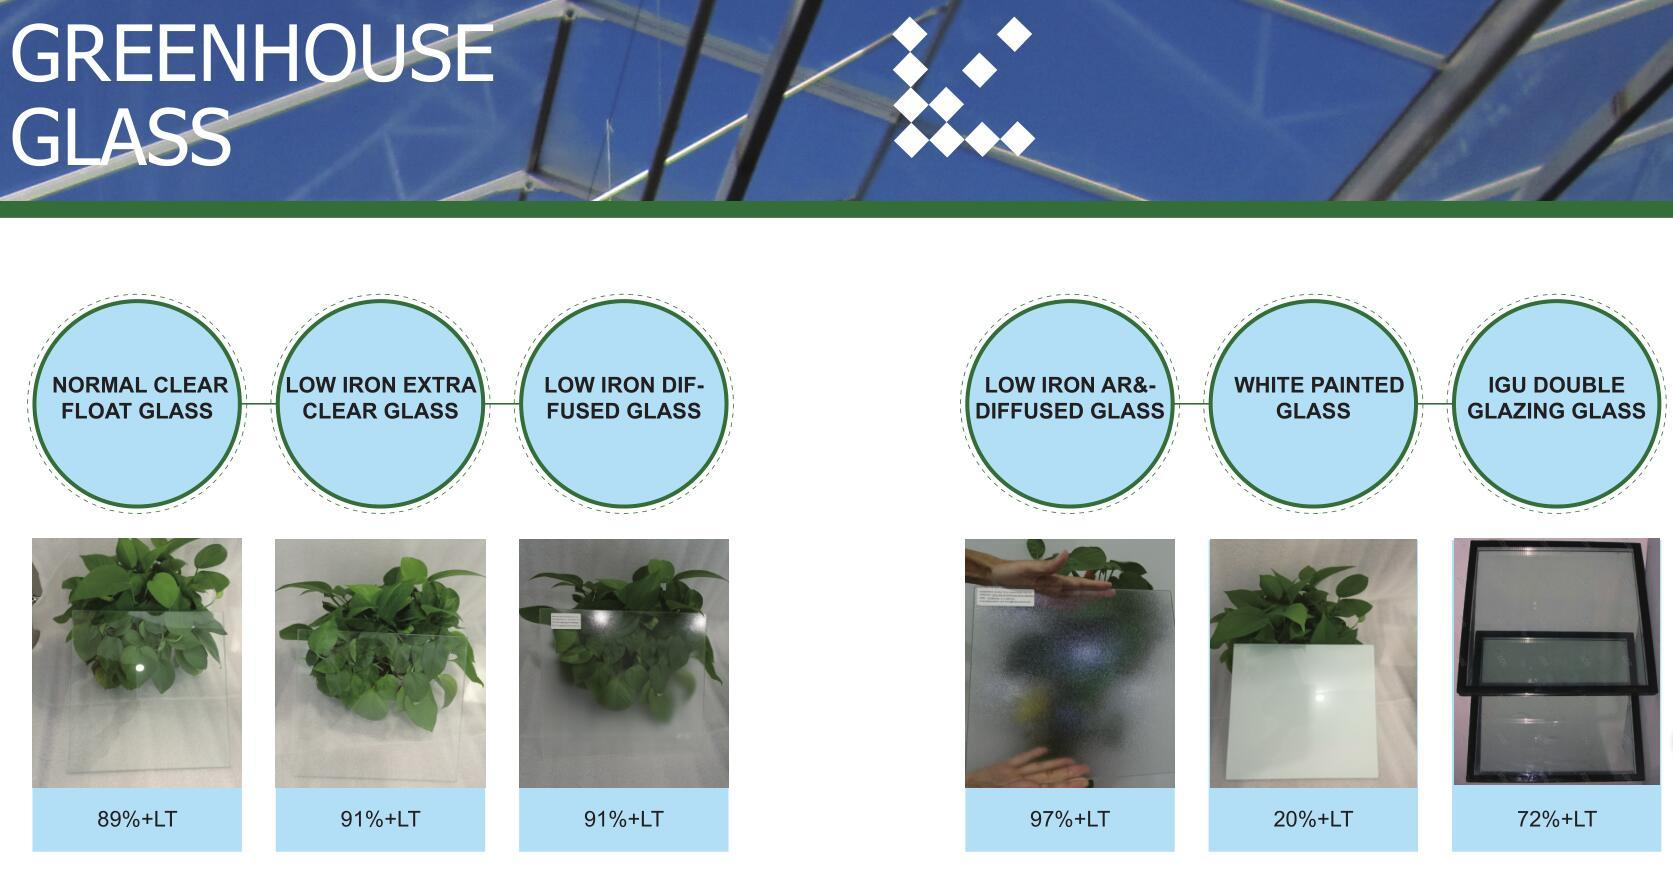 4mm Low Iron Diffused Horticulture Glass for Greenhouse